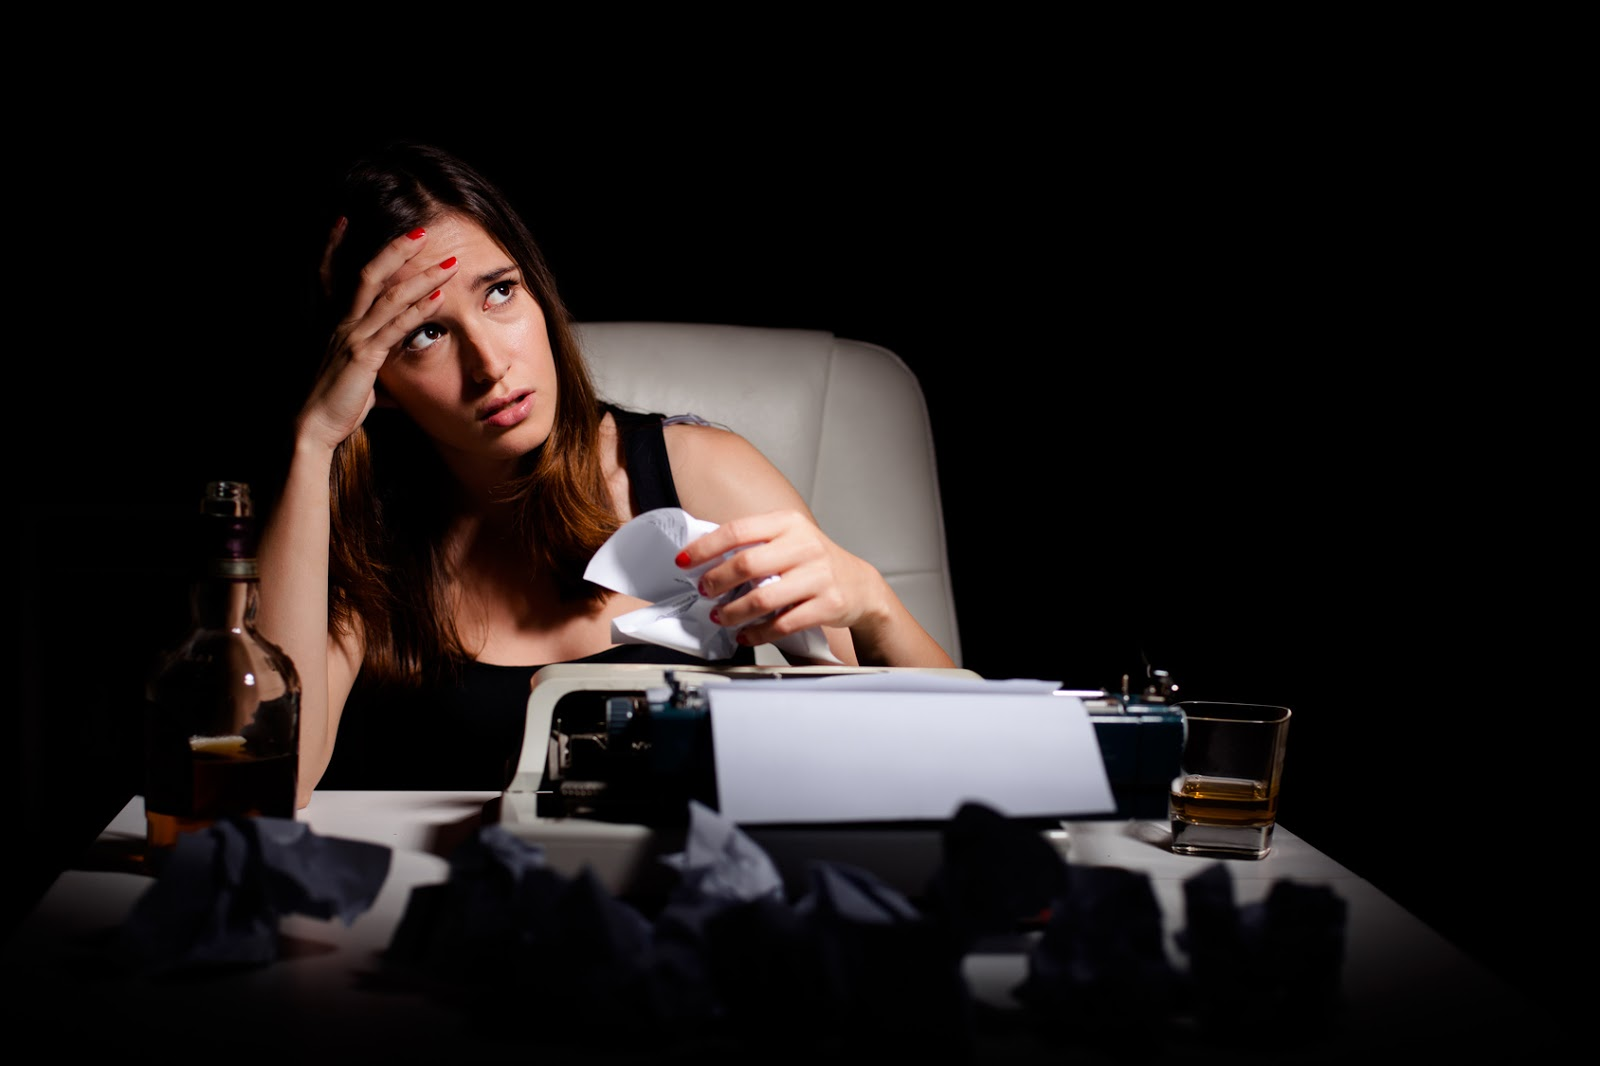 Is it possible to get past writers block?